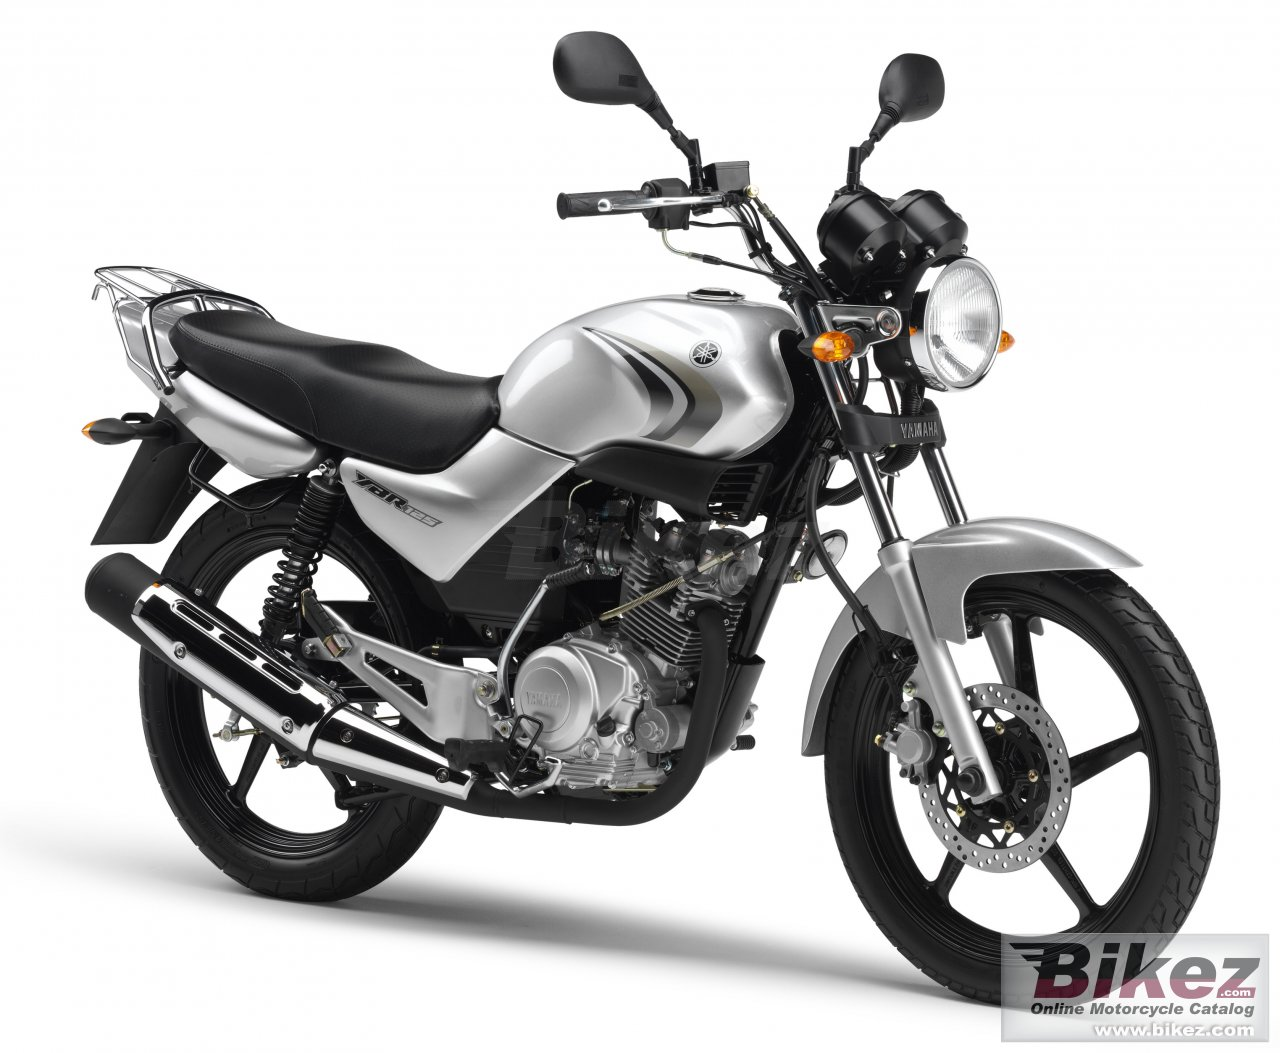 Big Yamaha ybr 125 picture and wallpaper from Bikez.com